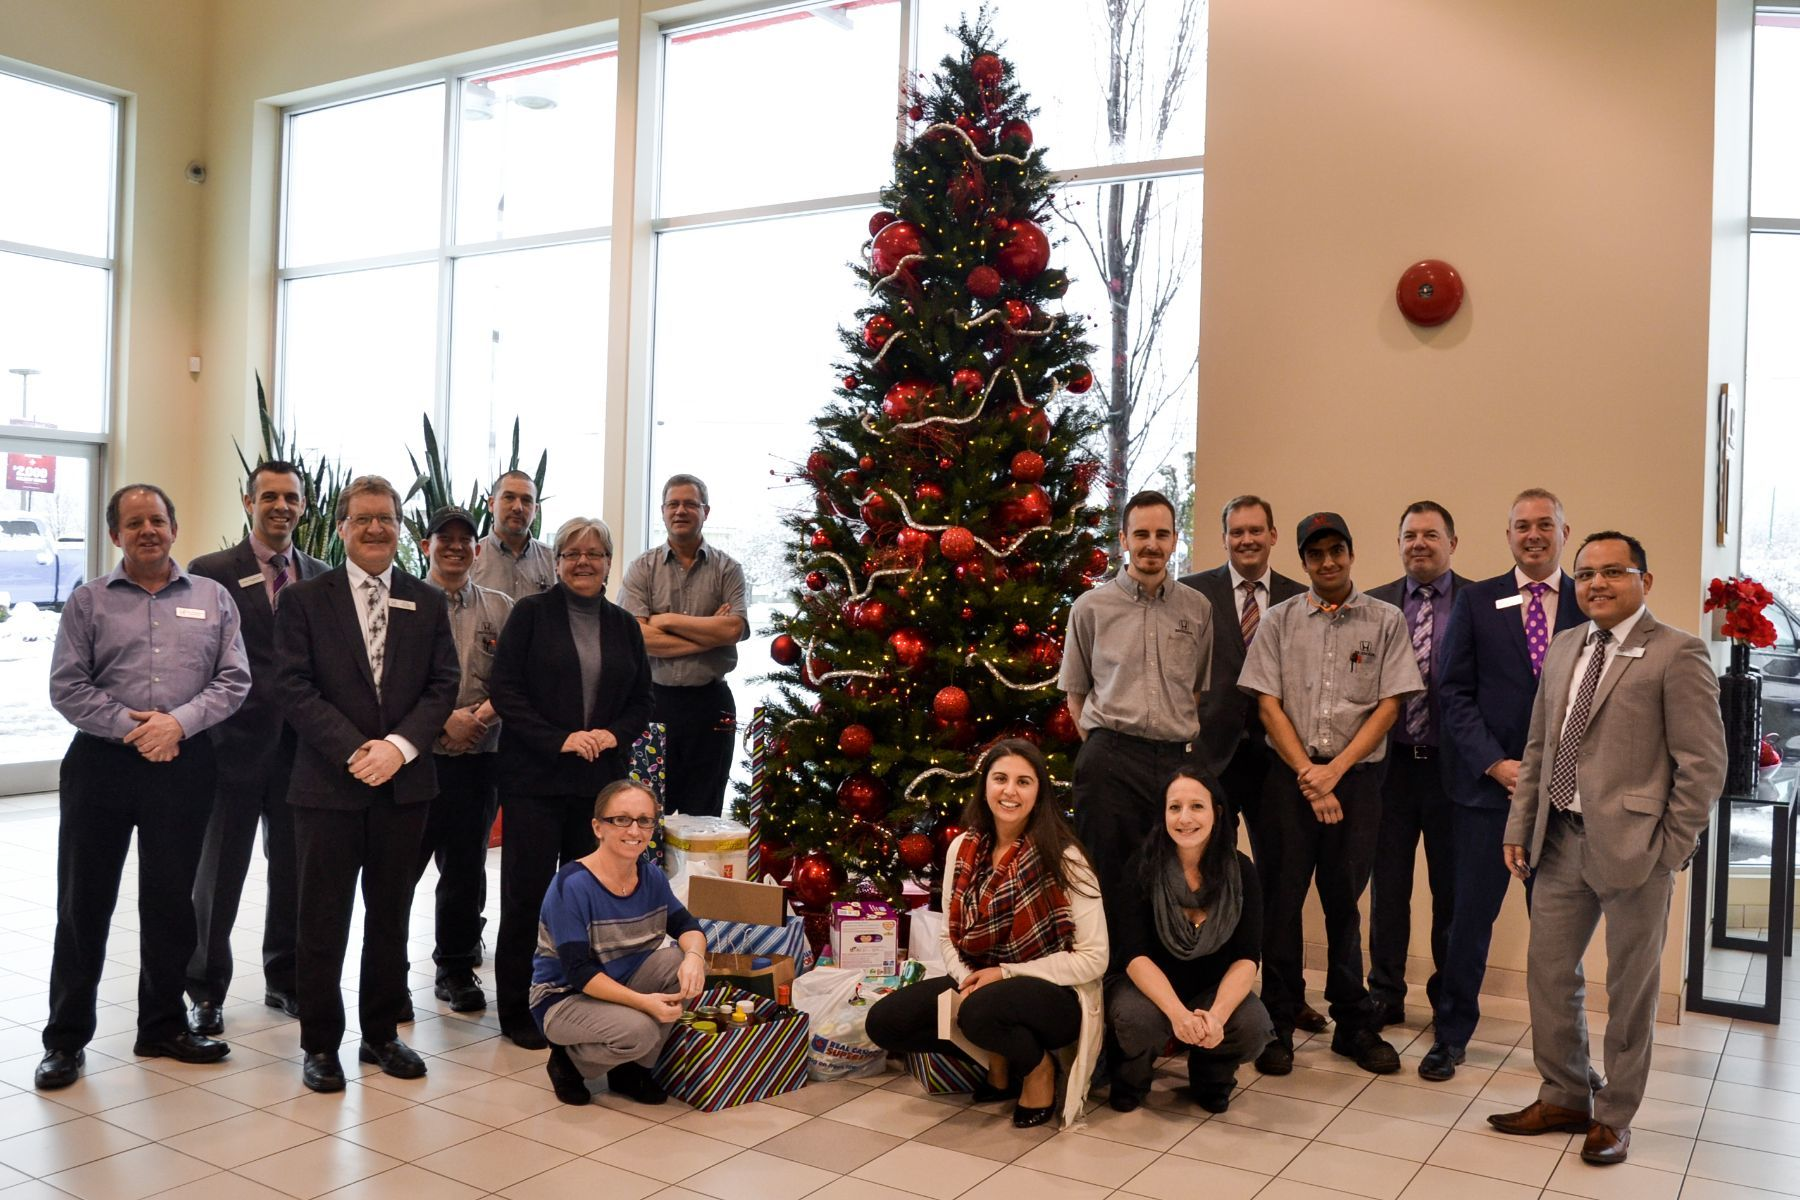 Penticton Honda and Penticton Hyundai Annual Christmas Gifts for a Local Family in Need